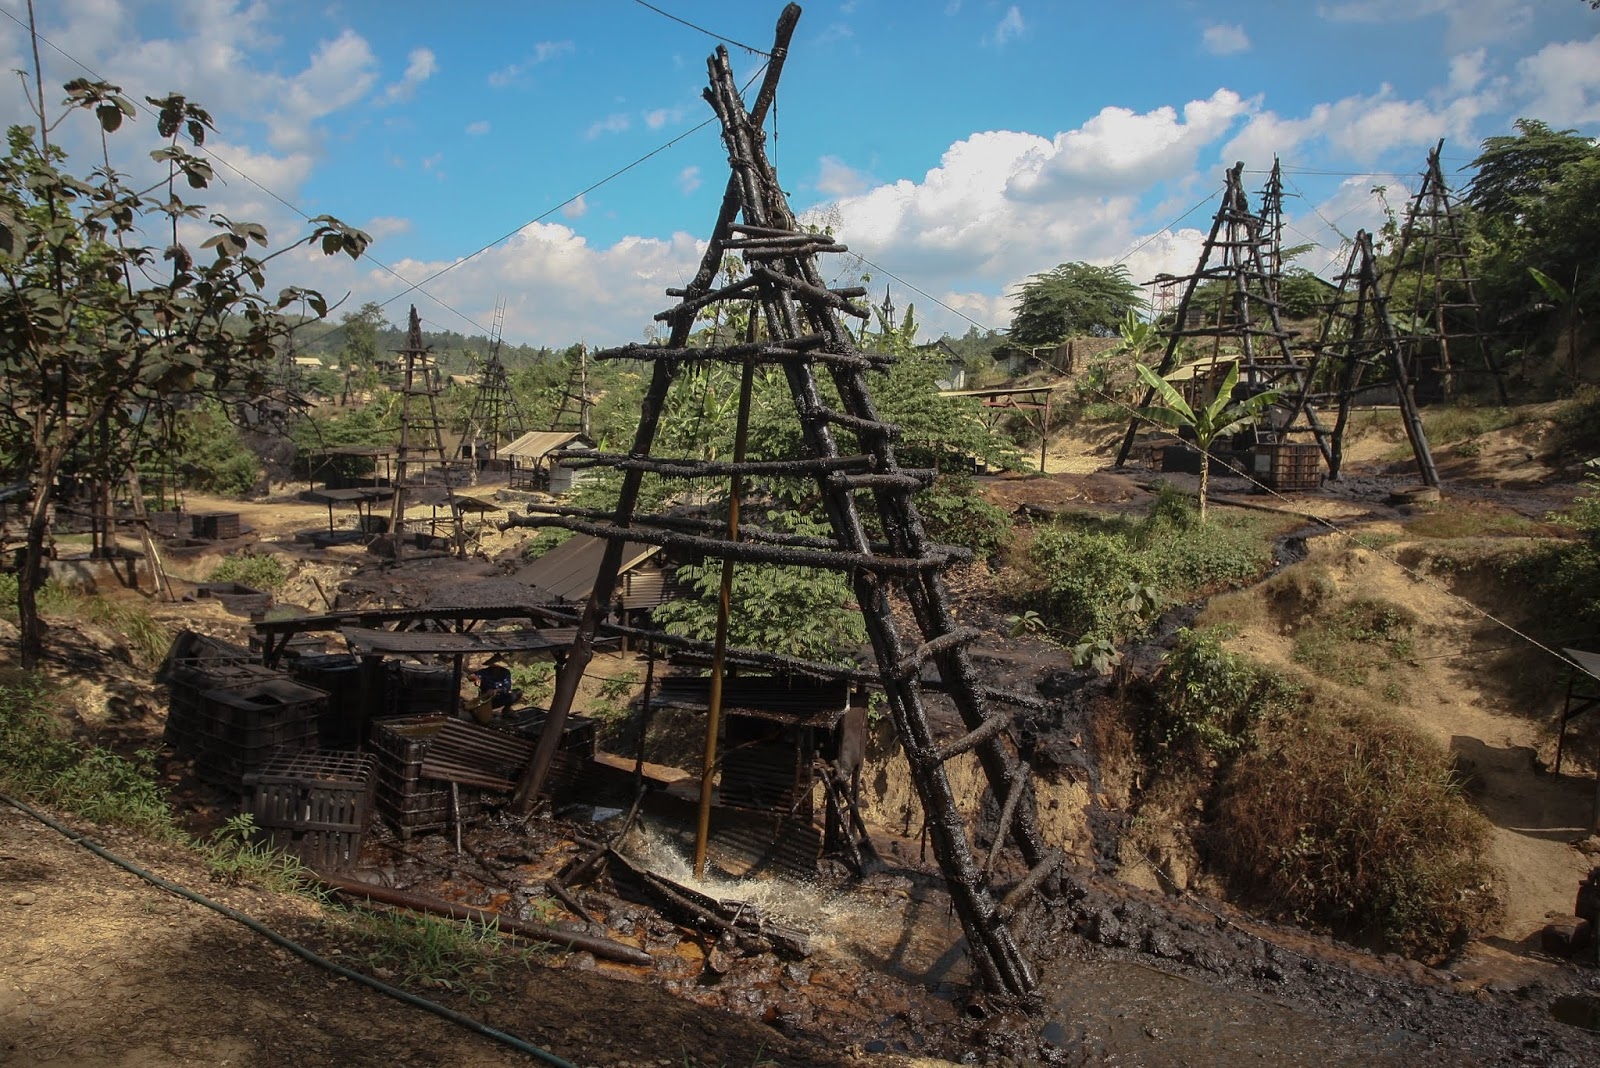 Tourism in Oil and Gas Area around the Texas of Indonesia, Mind to Try?